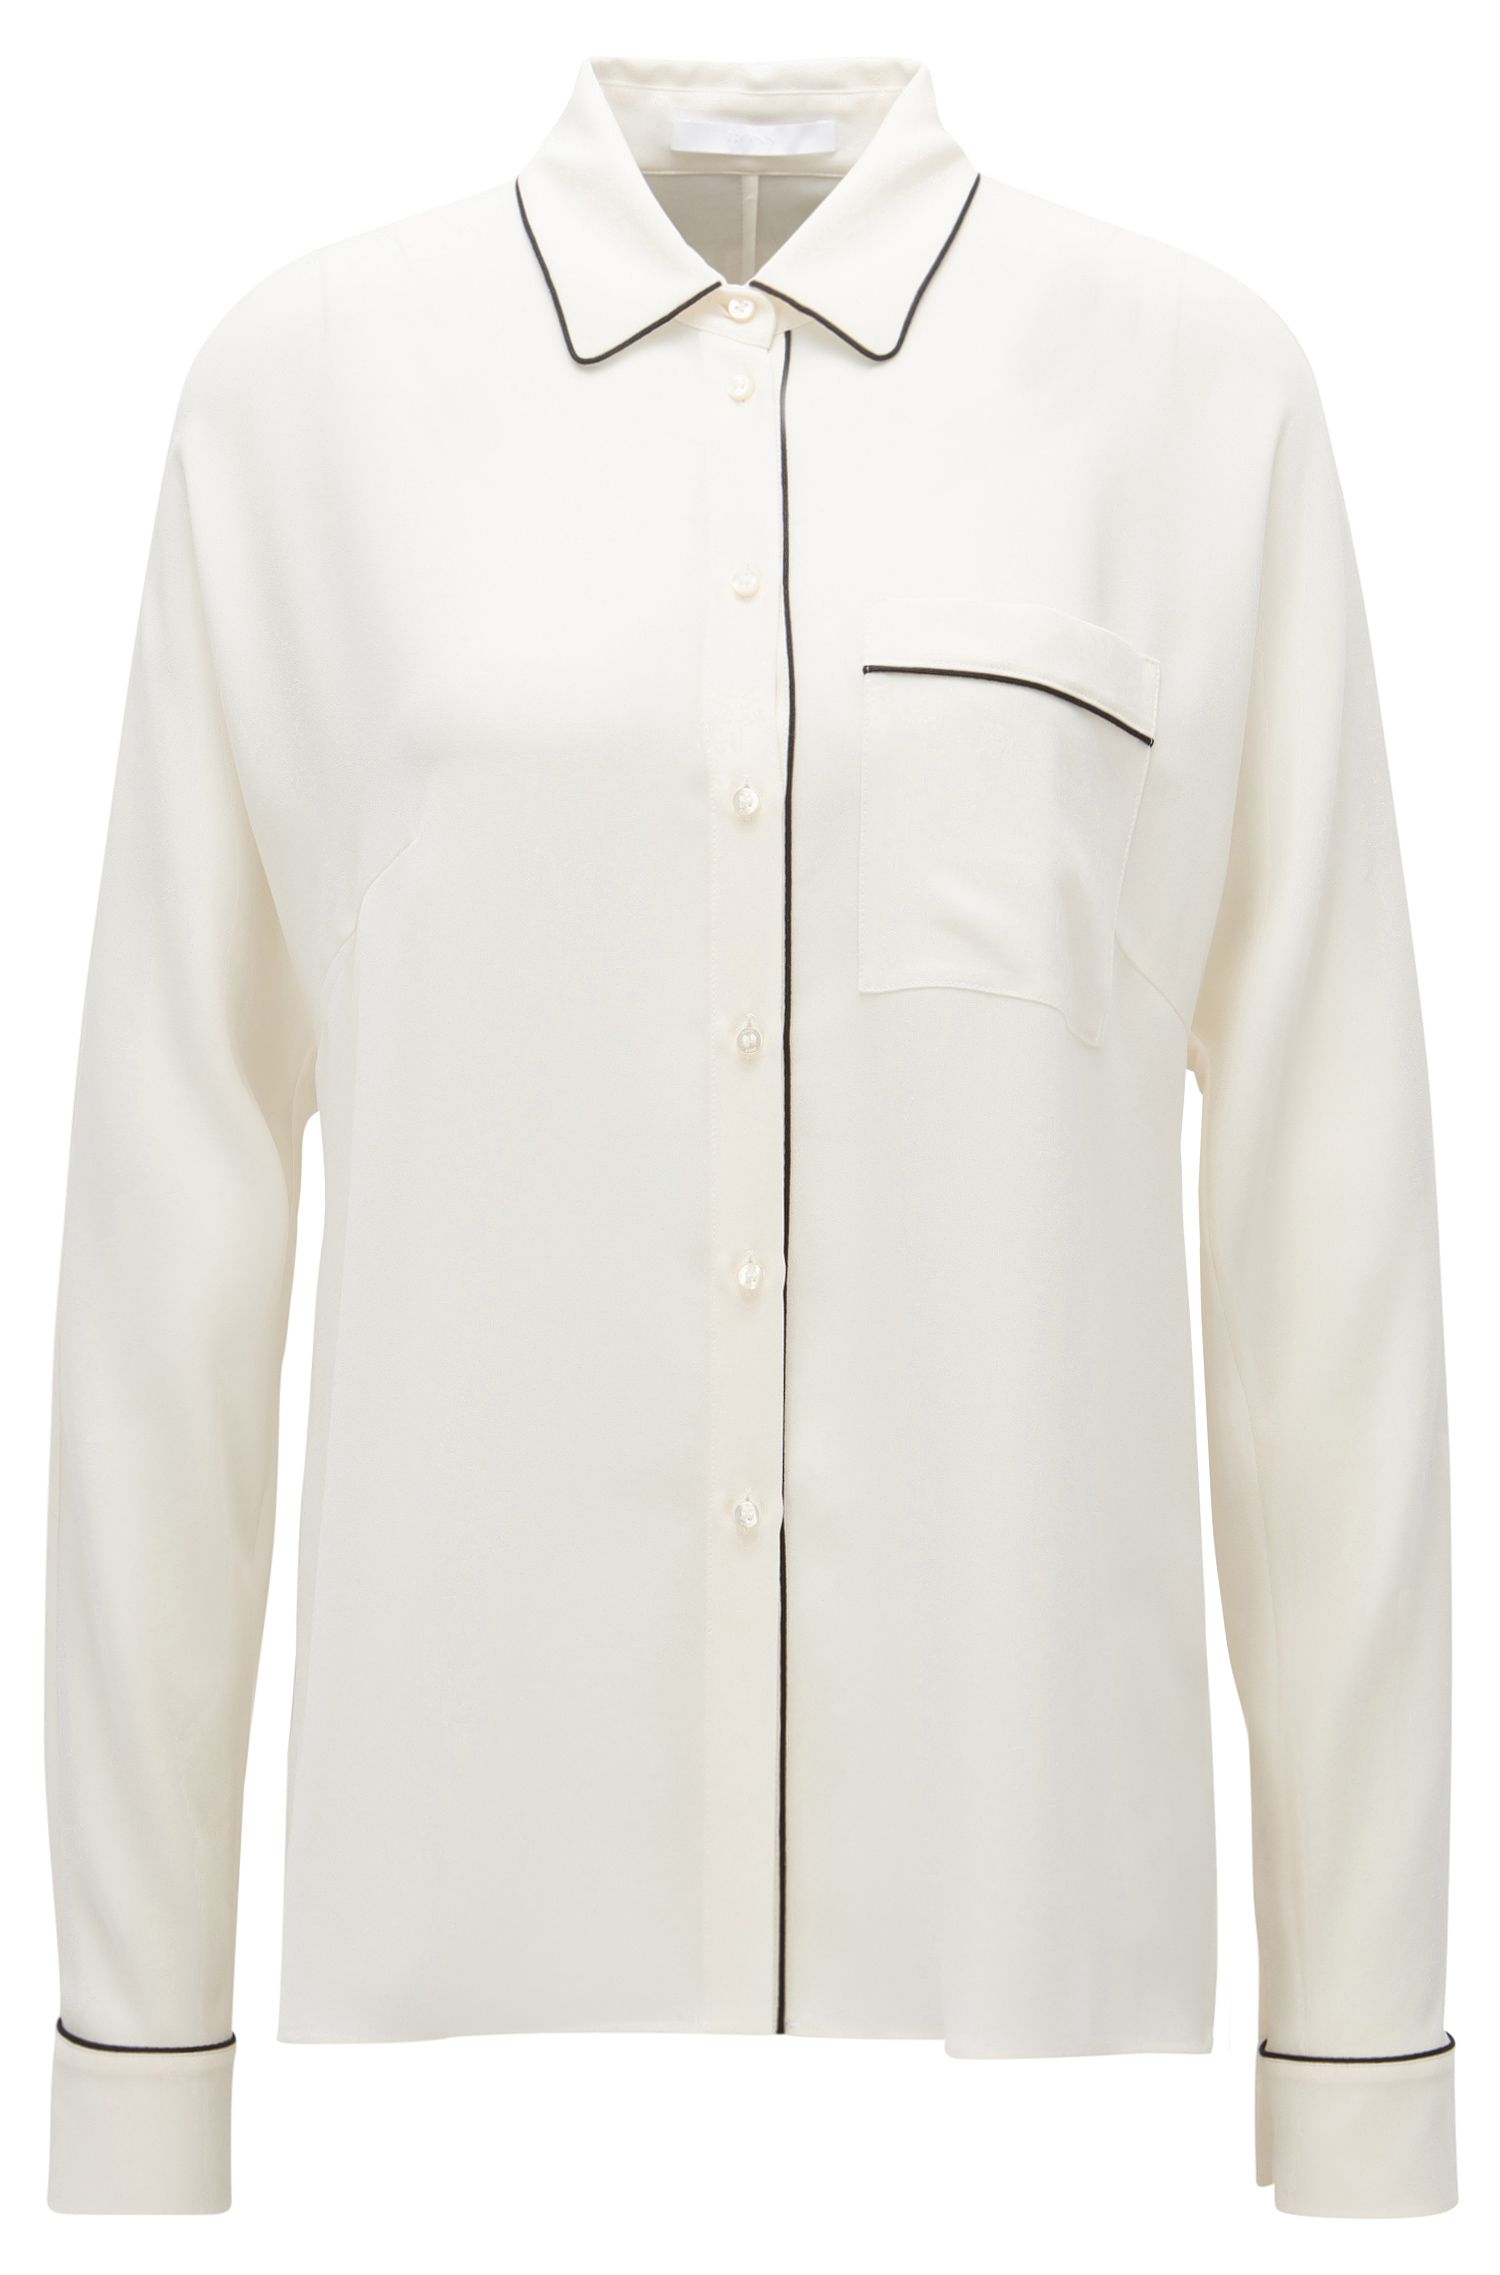 'Benisa' | Piped Blouse